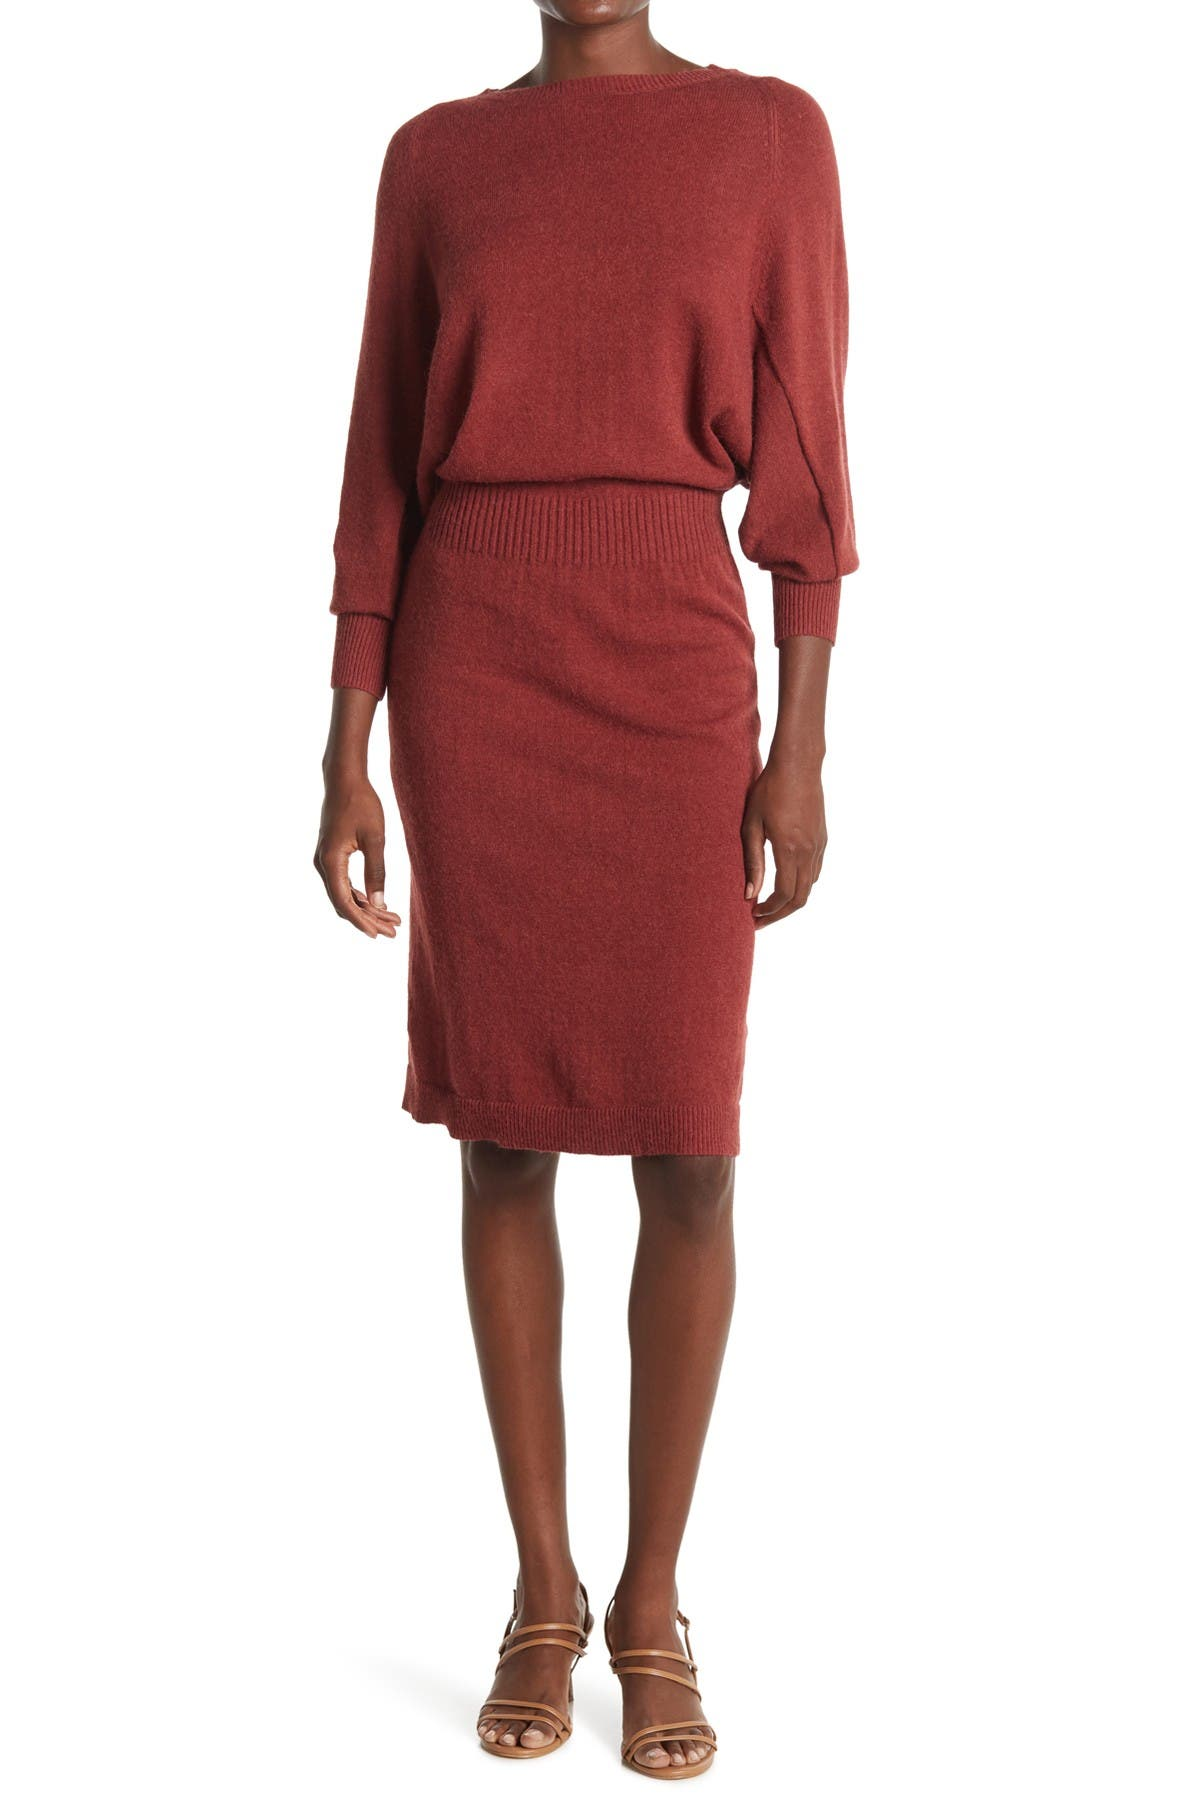 Image of STITCHDROP All in One Blouson Knit Sweater Dress